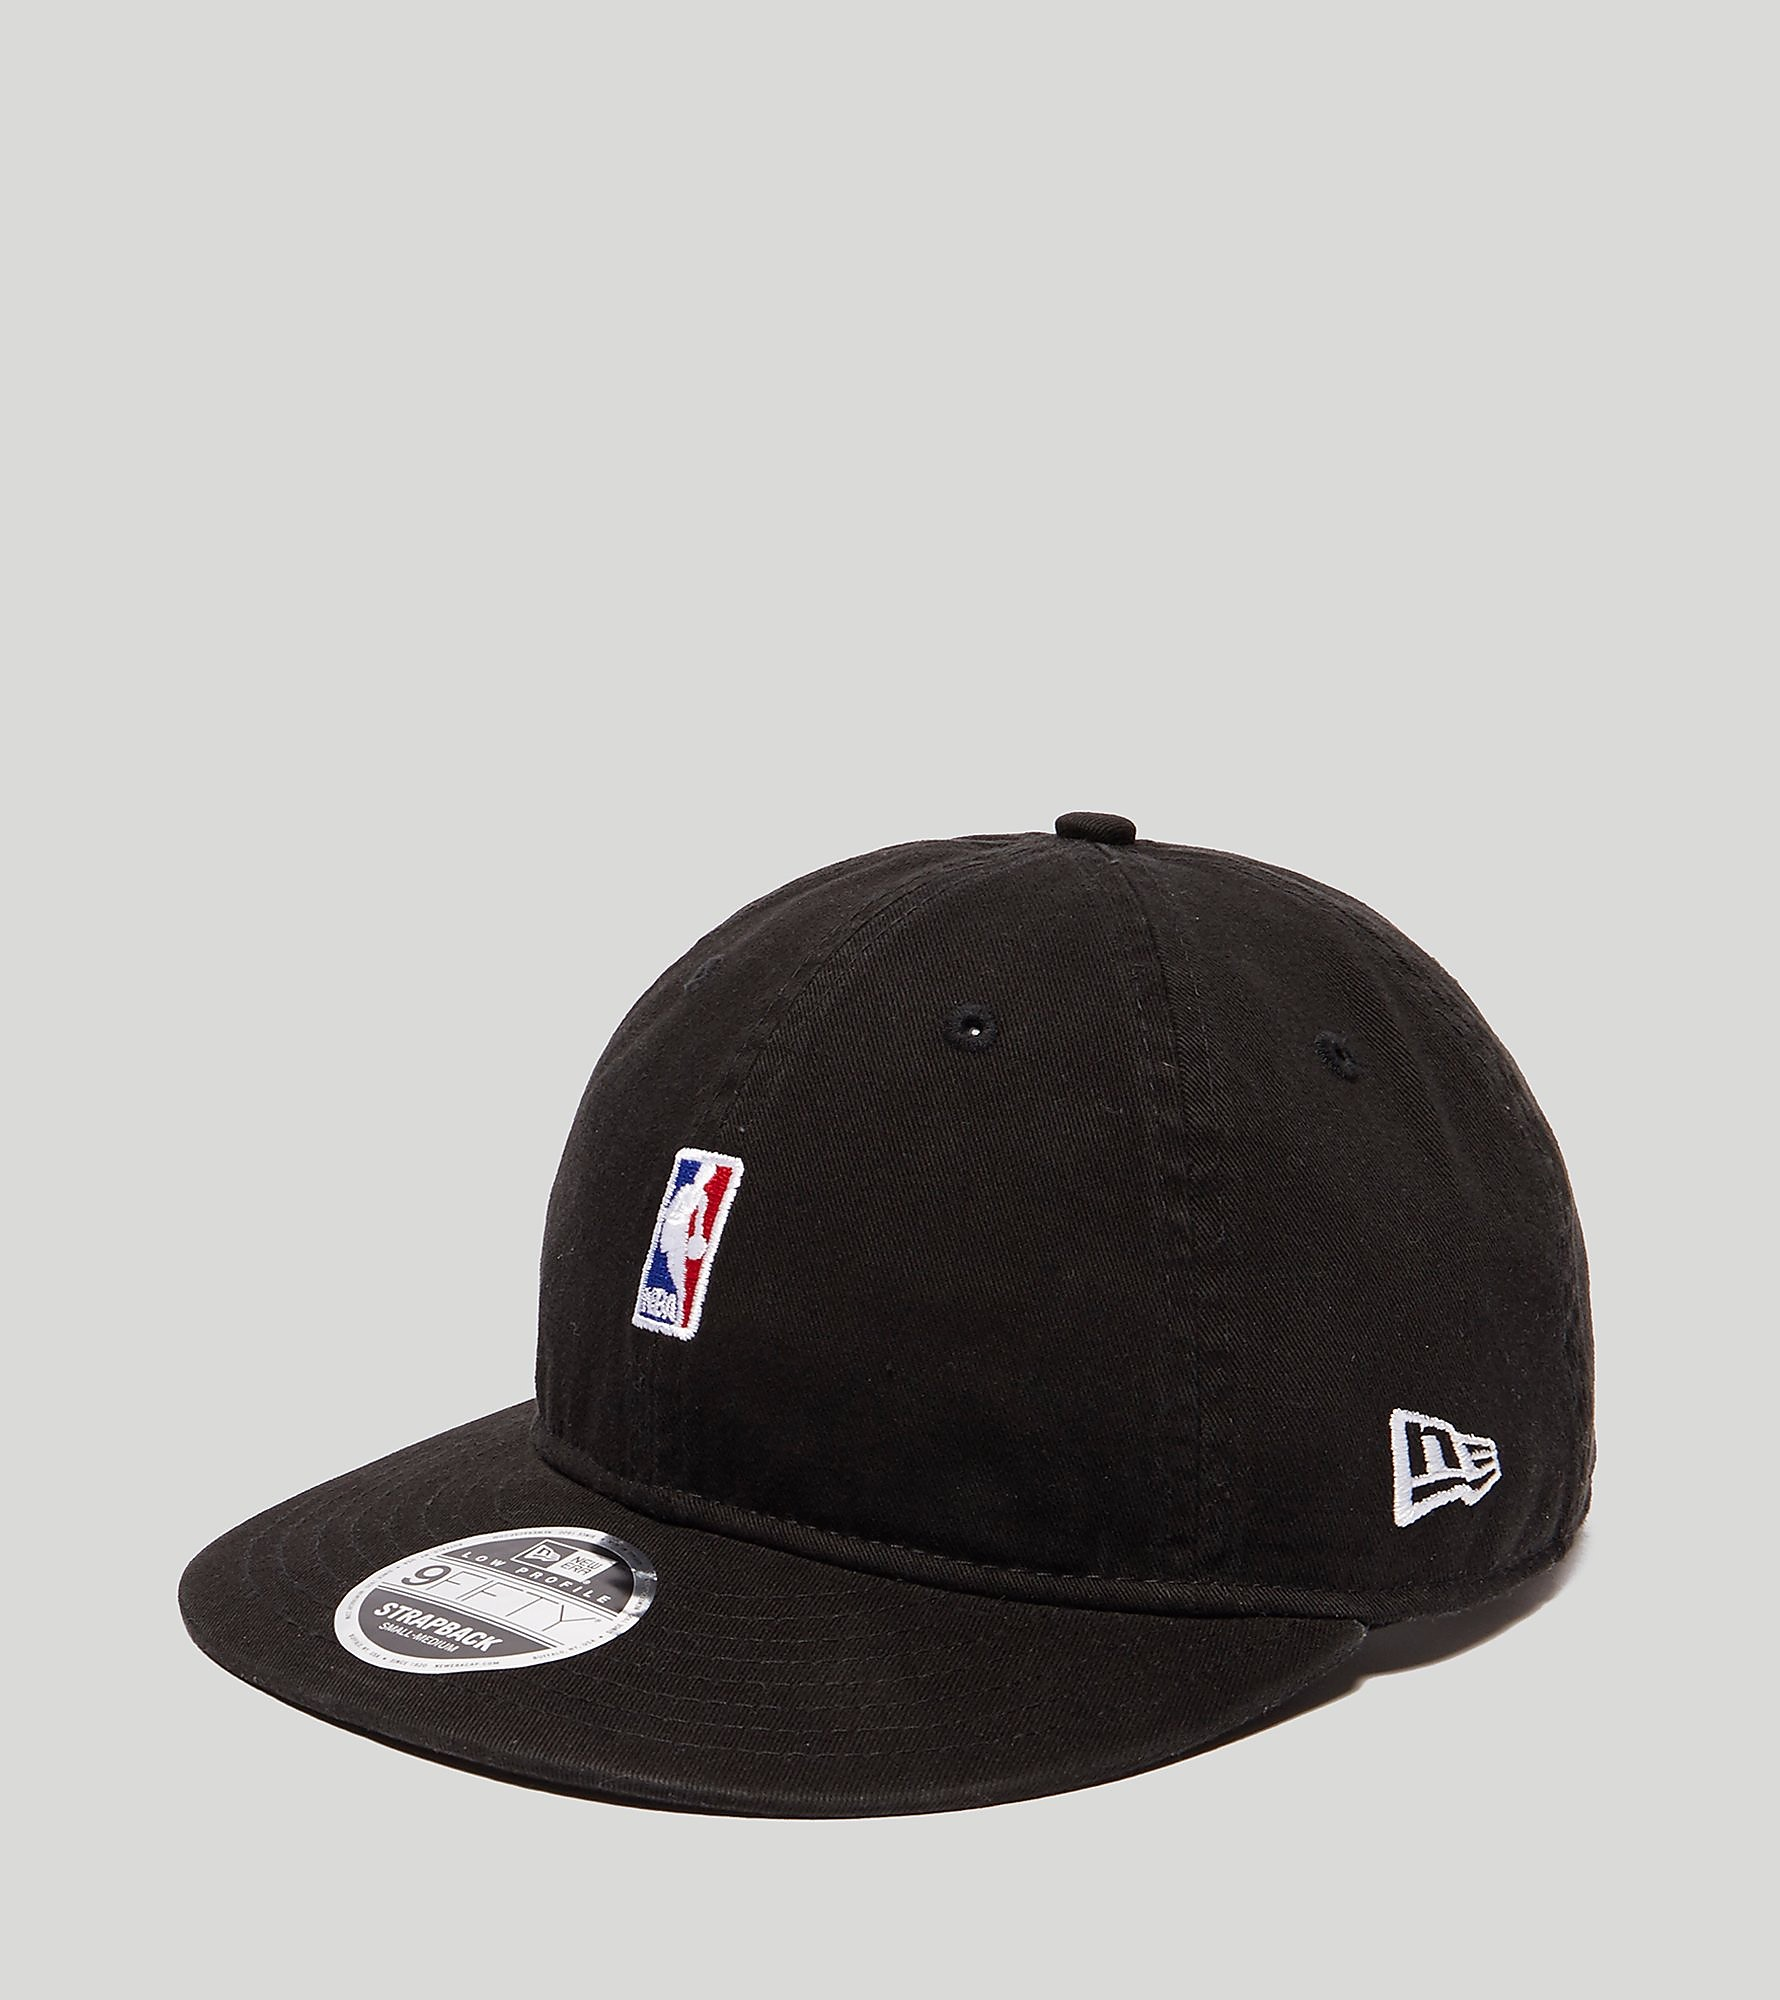 New Era 9FIFTY Low NBA Logo Cap